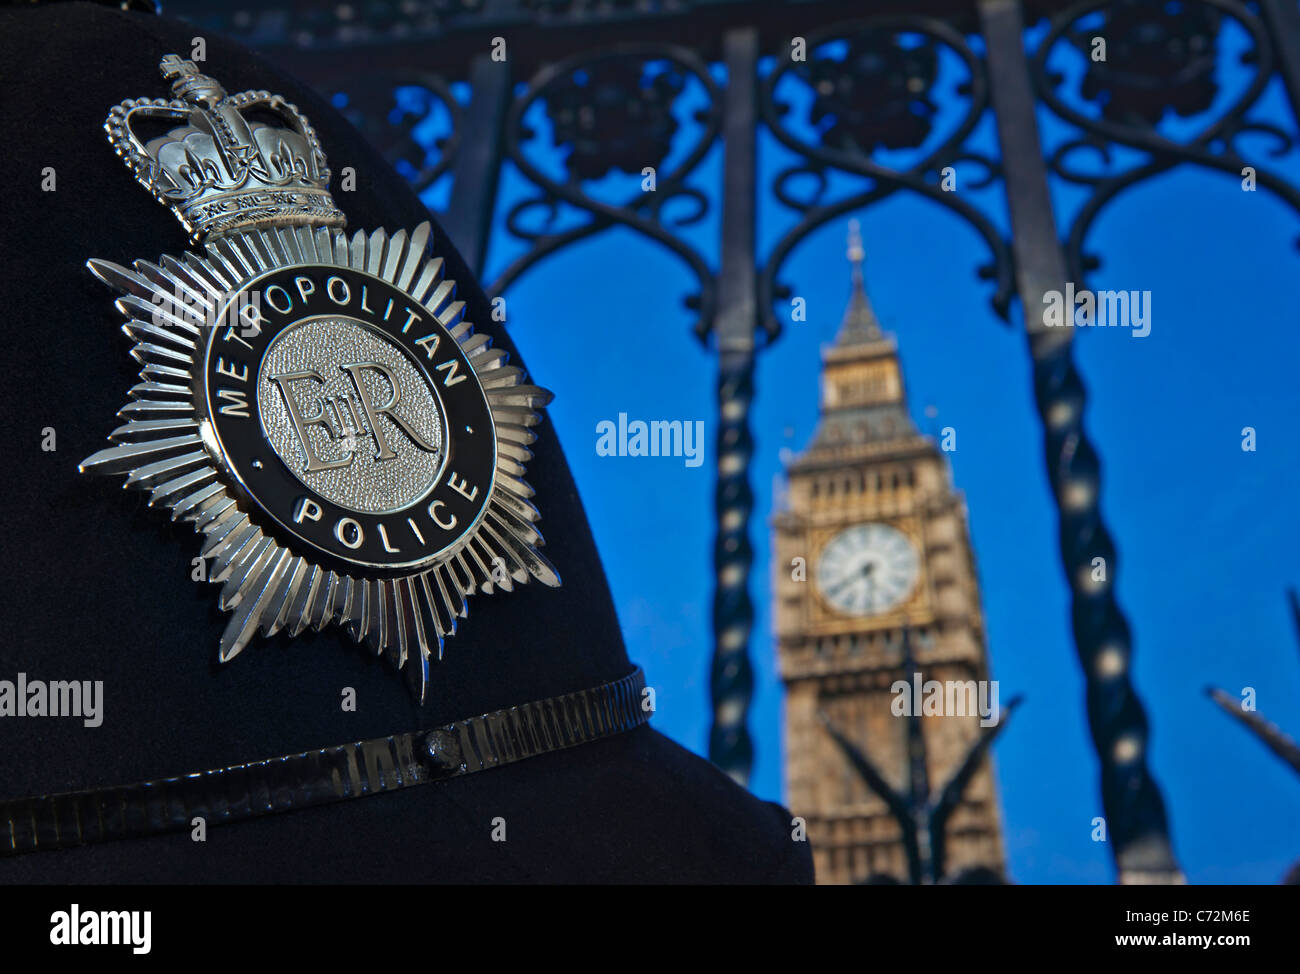 STOP & SEARCH Parliament London Metropolitan Police helmet badge outside Houses of Parliament on terrorism security - Stock Image